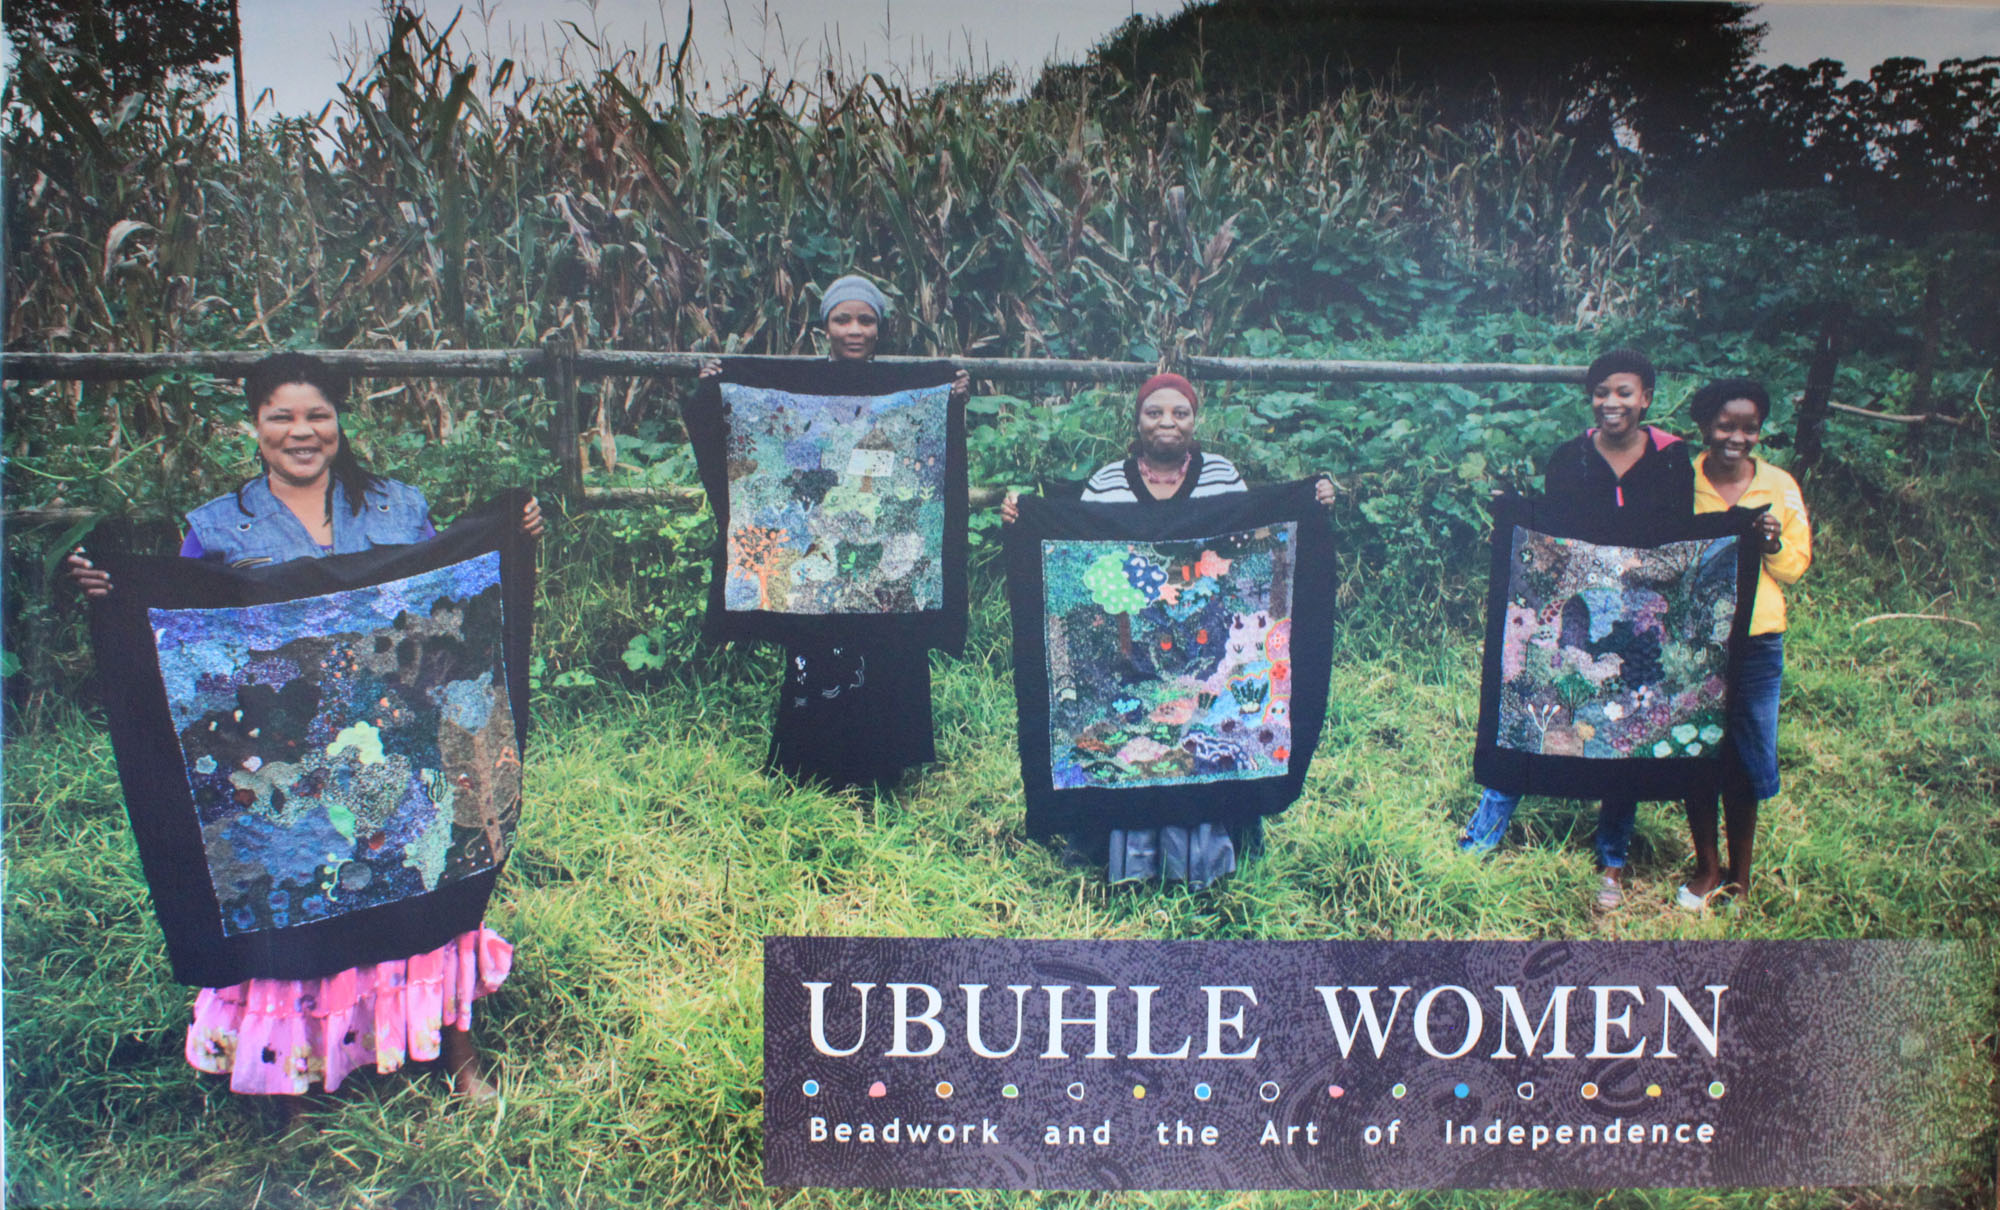 ubuhle women header